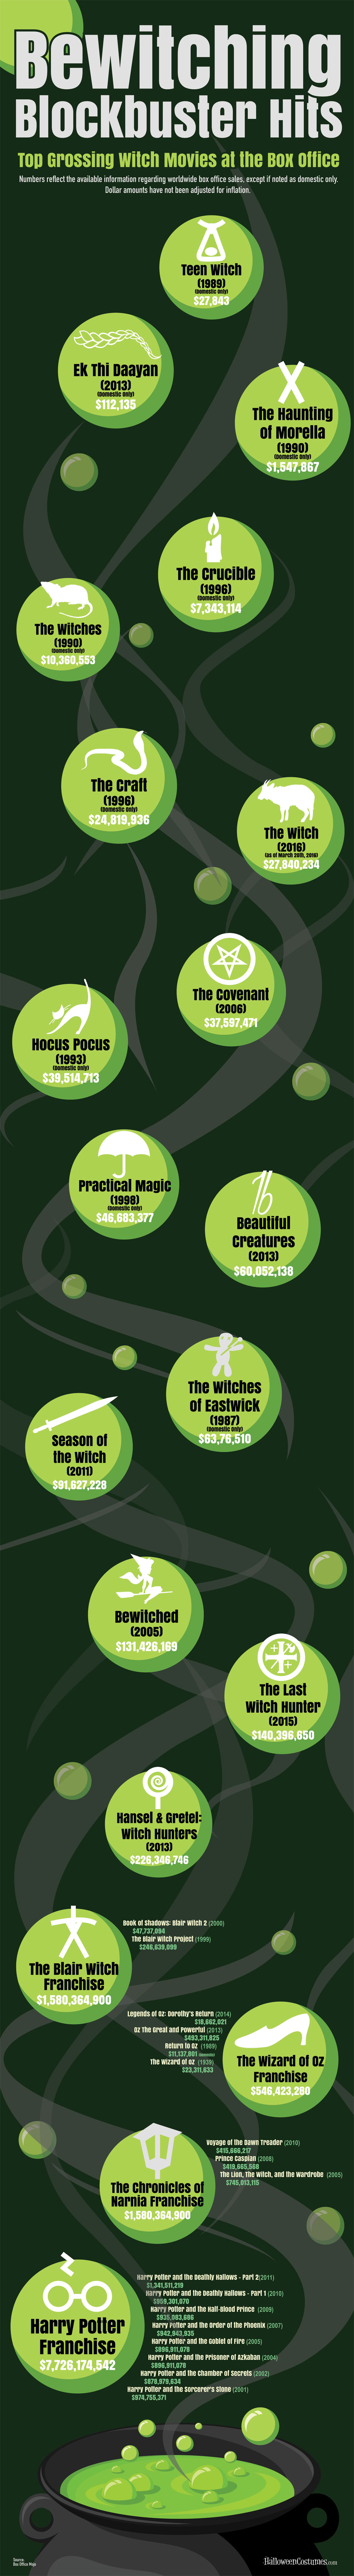 Bewitching Blockbuster Hits: Top Grossing Witch Movies at the Box Office